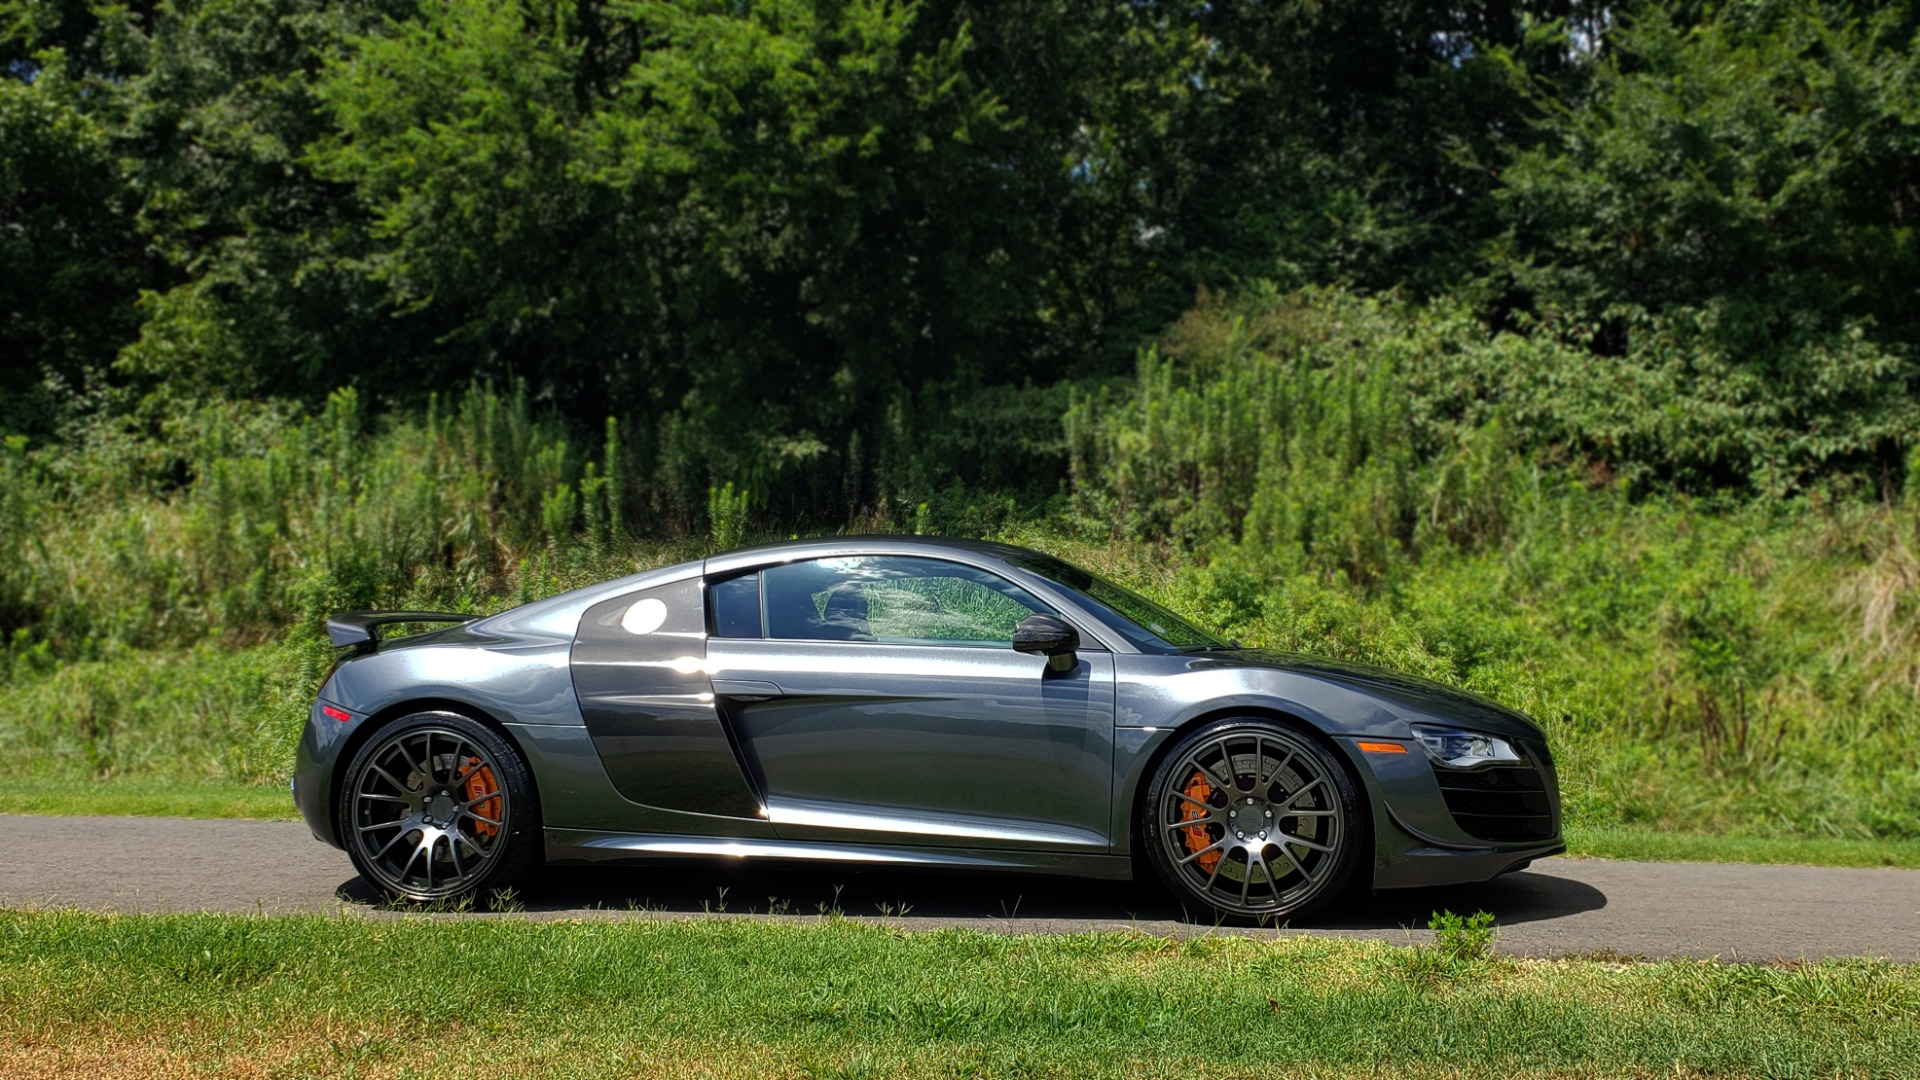 Used 2010 Audi R8 5.2L V10 SUPERCHARGED / AWD / COUPE / CUSTOM TUNED for sale $82,795 at Formula Imports in Charlotte NC 28227 8